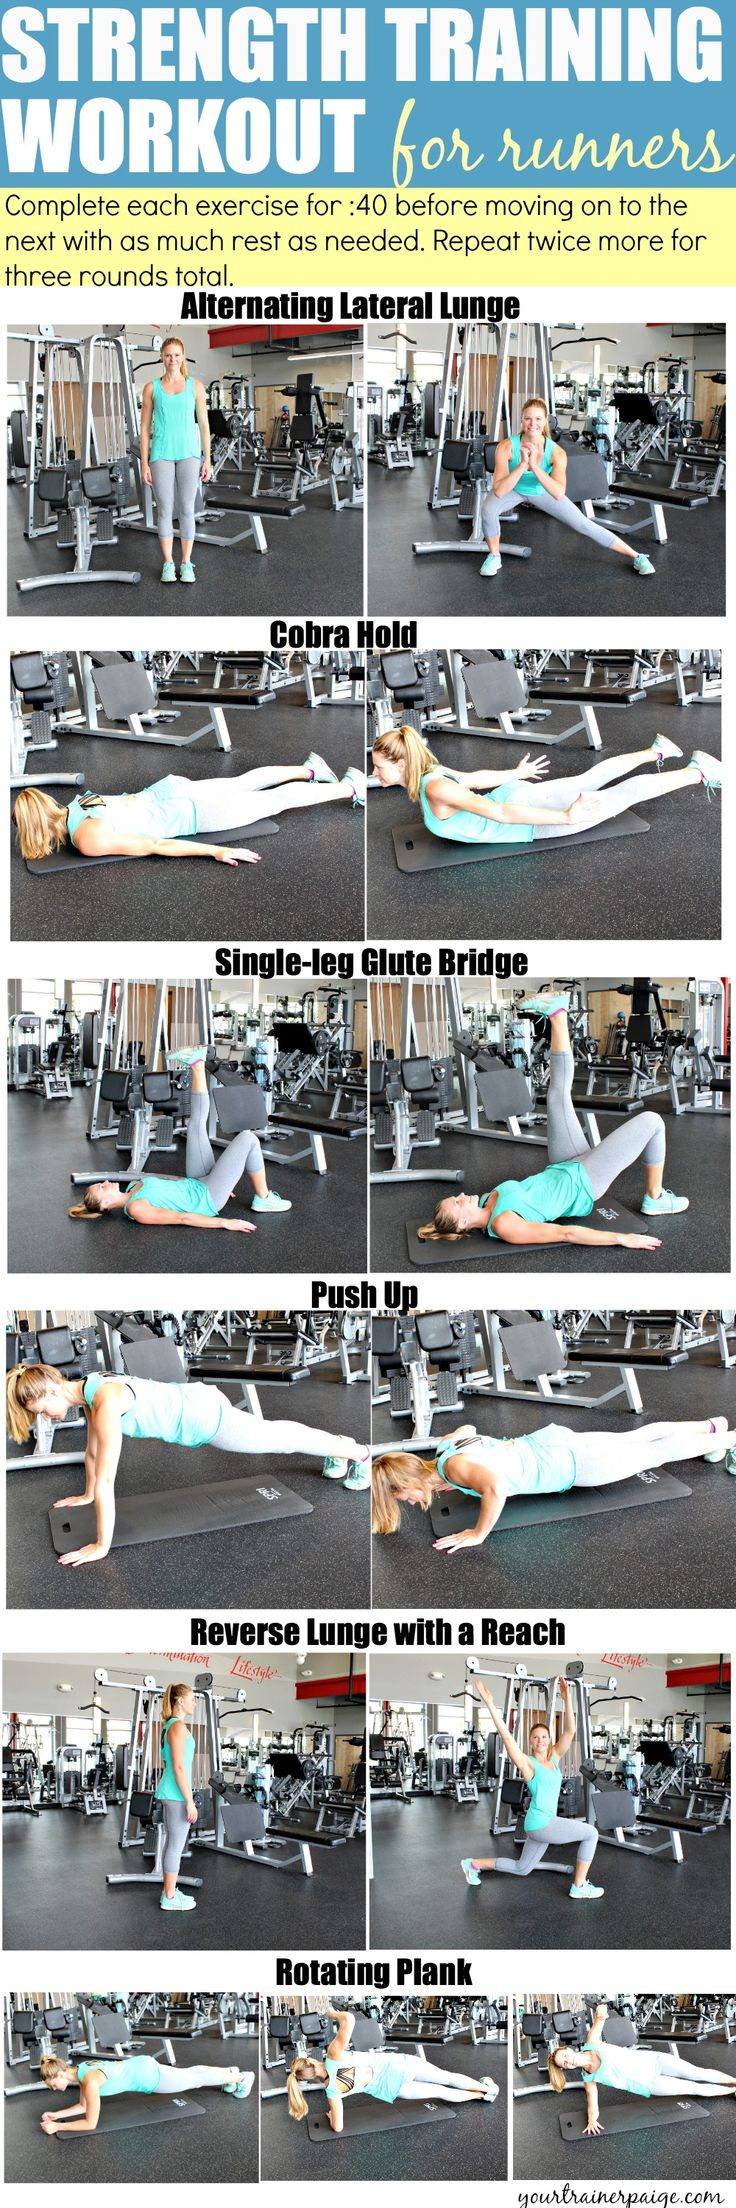 Strength Training Workout for Runners!